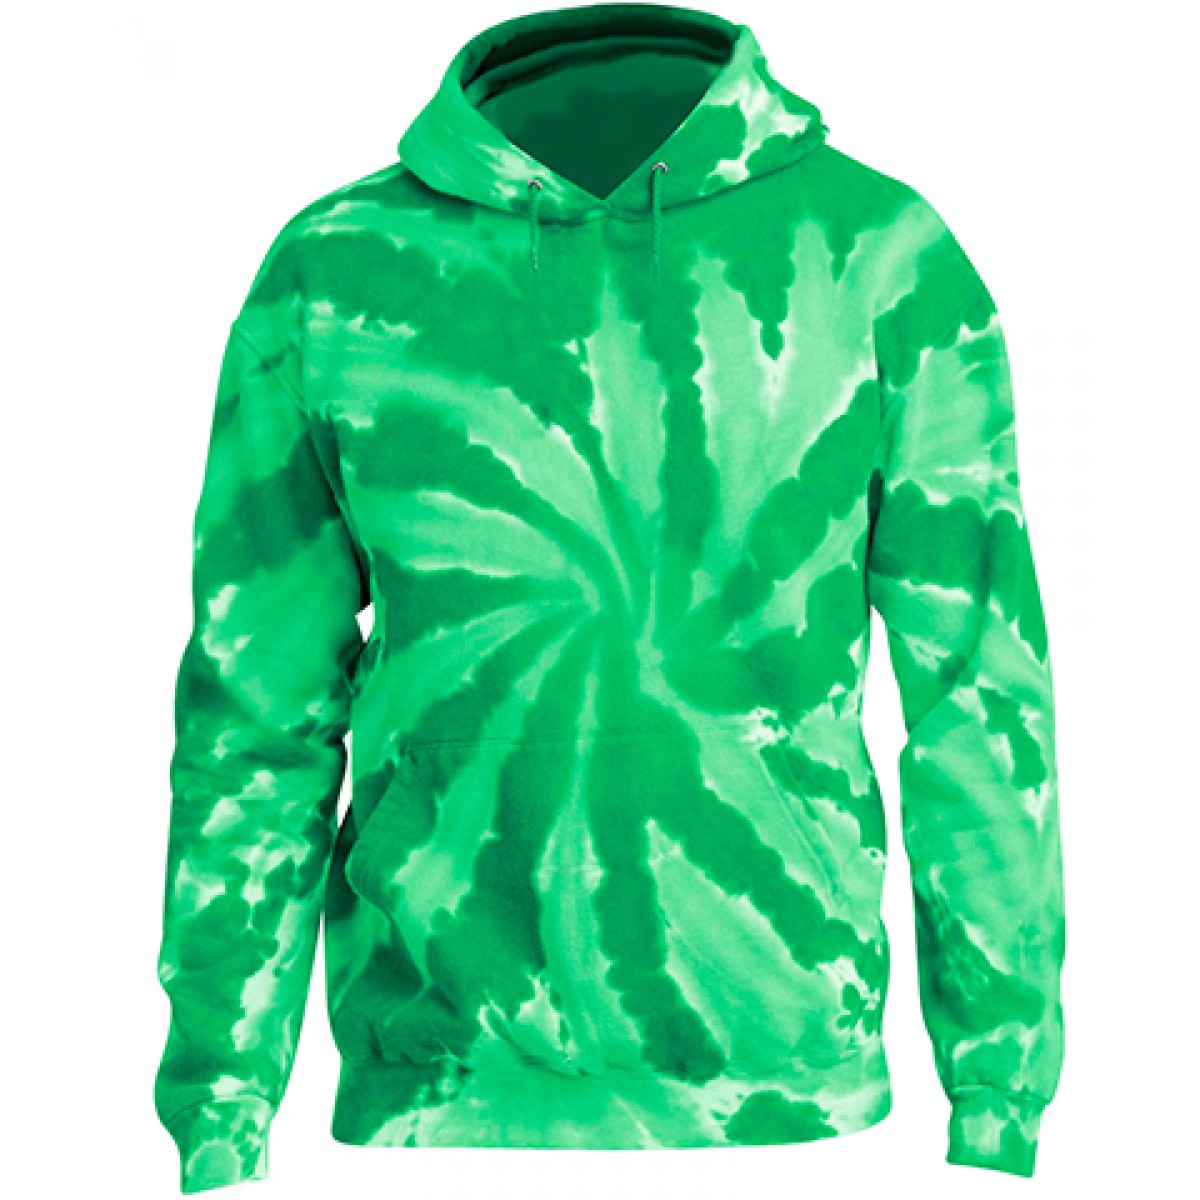 Tie-Dye Pullover Hooded Sweatshirt-Green-YS